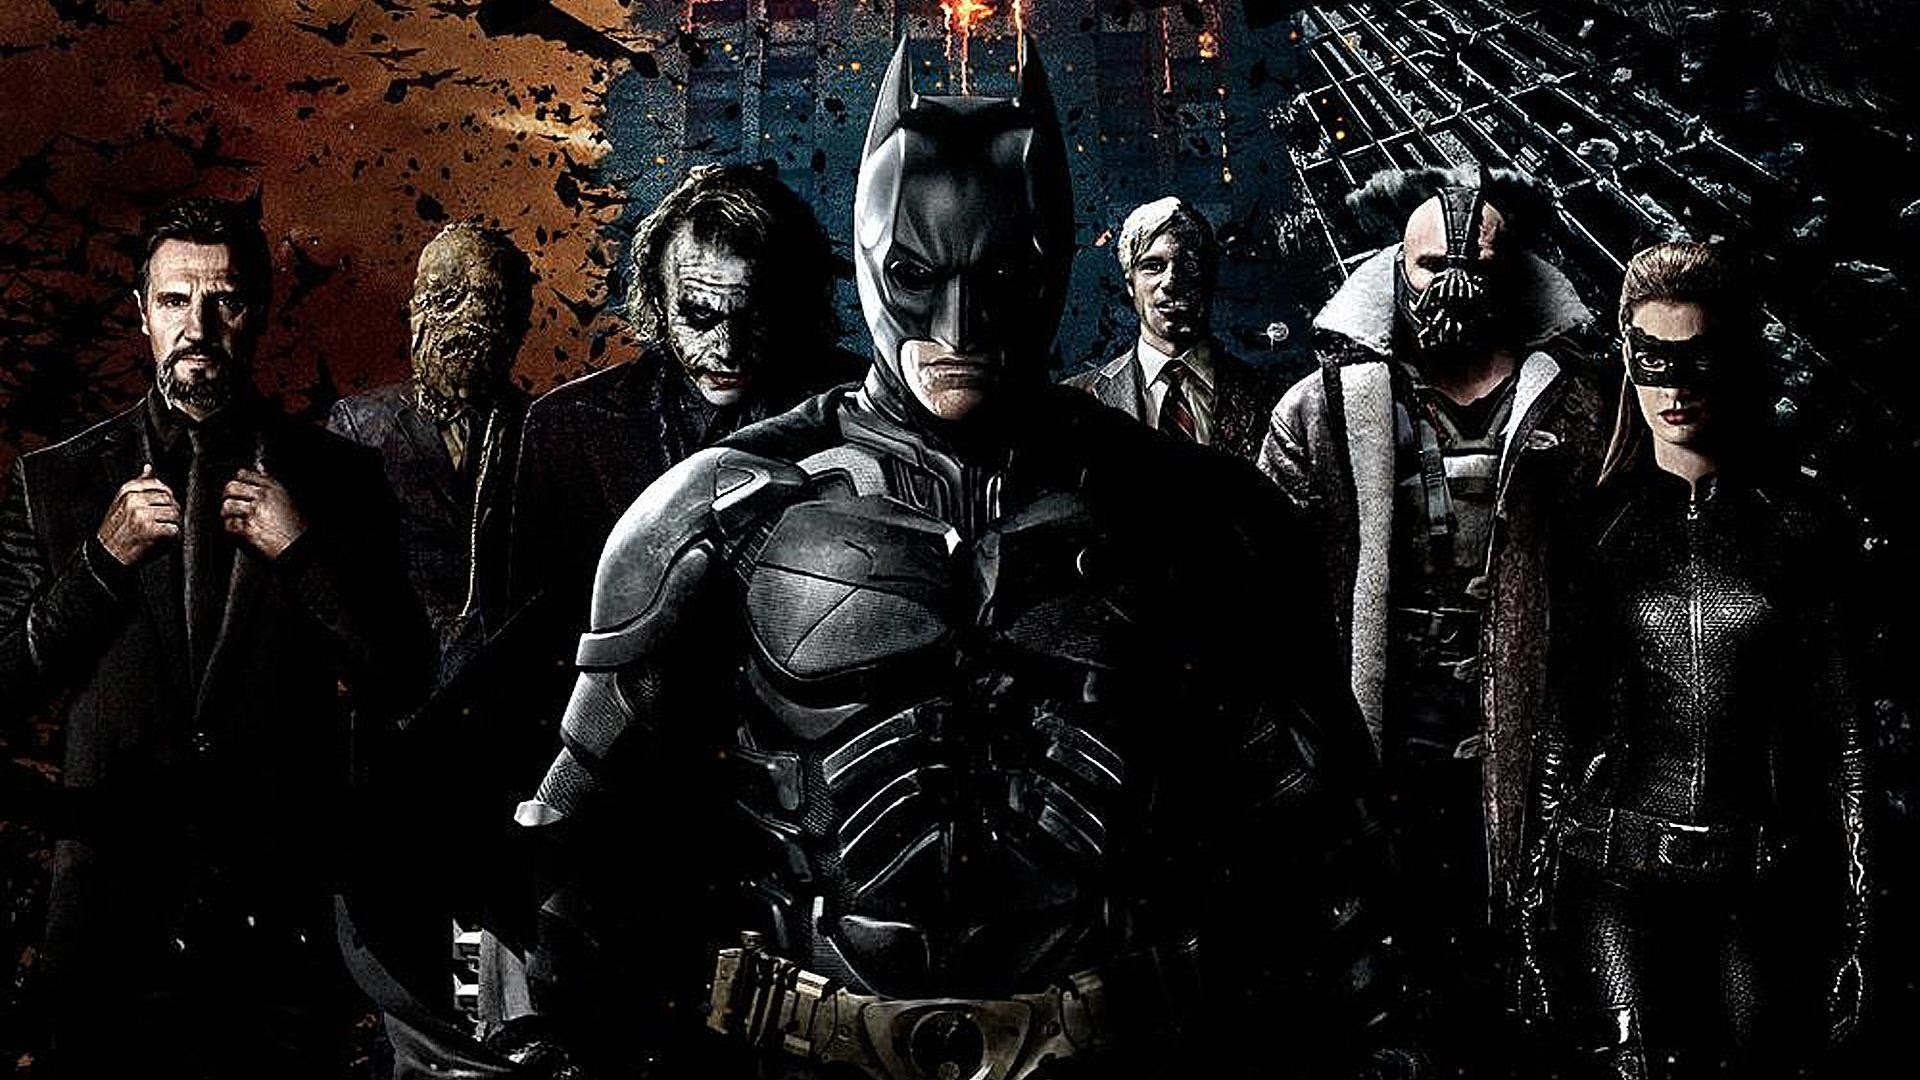 The Dark Knight Background 70 Images